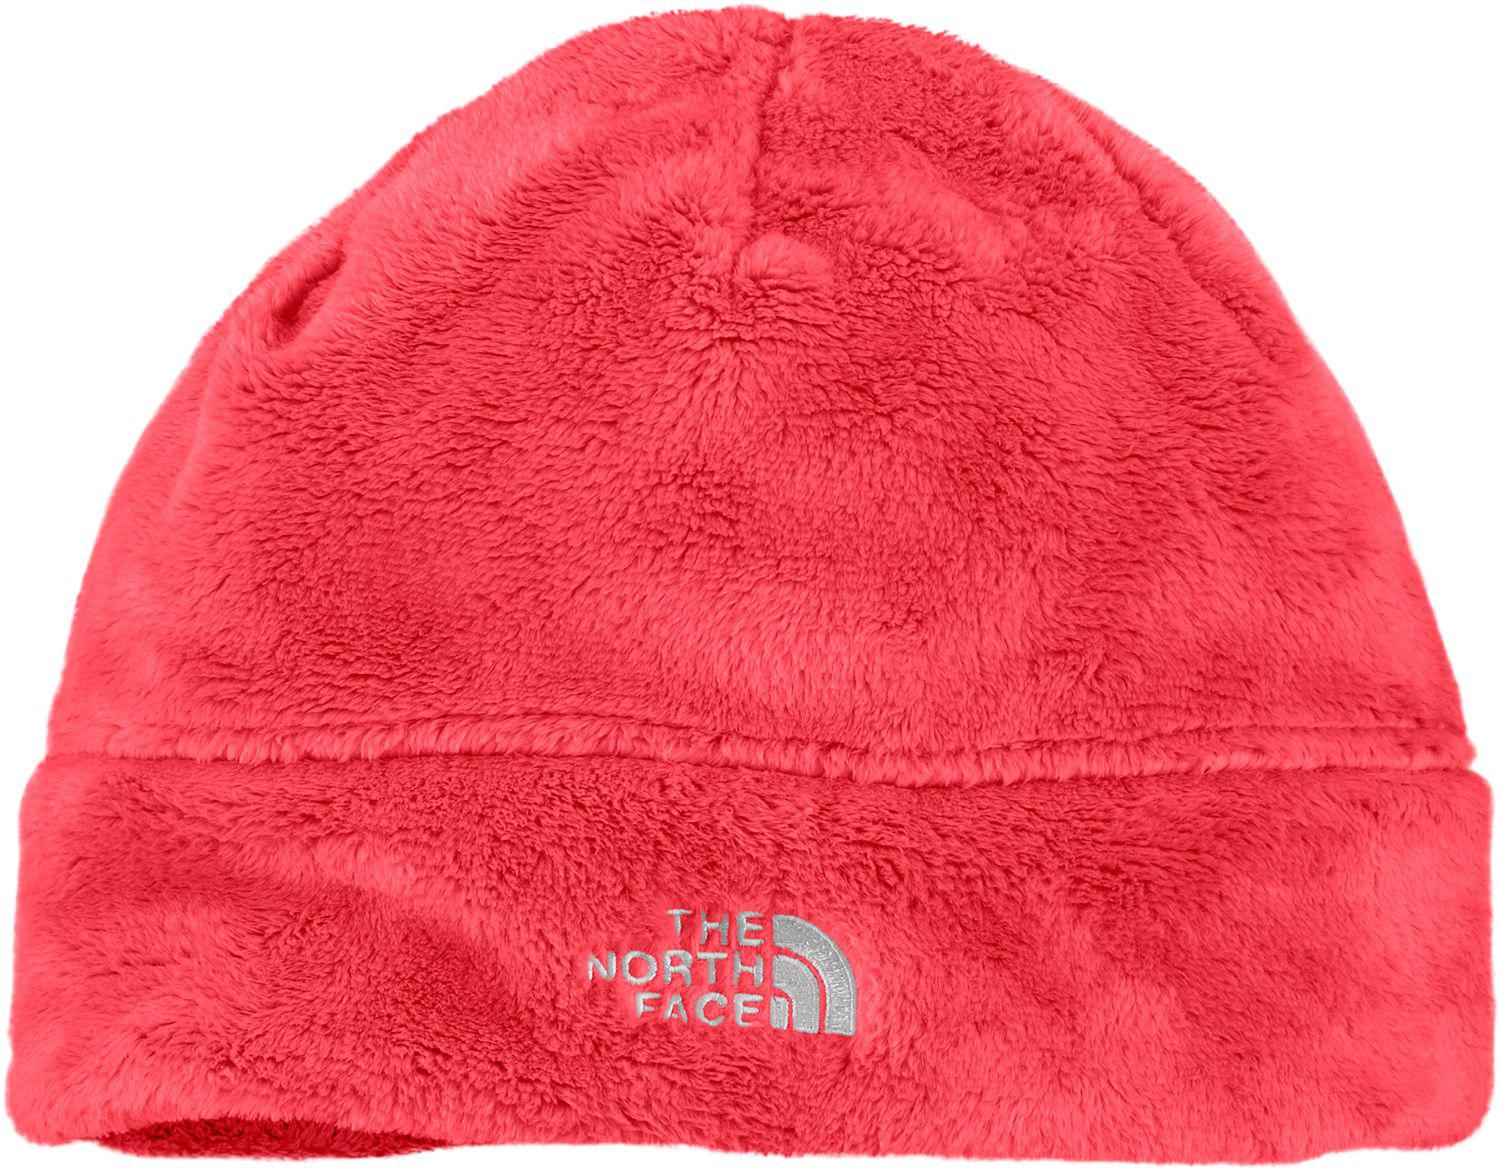 Lyst - The North Face Denali Thermal Beanie in Red 88400309c5c4